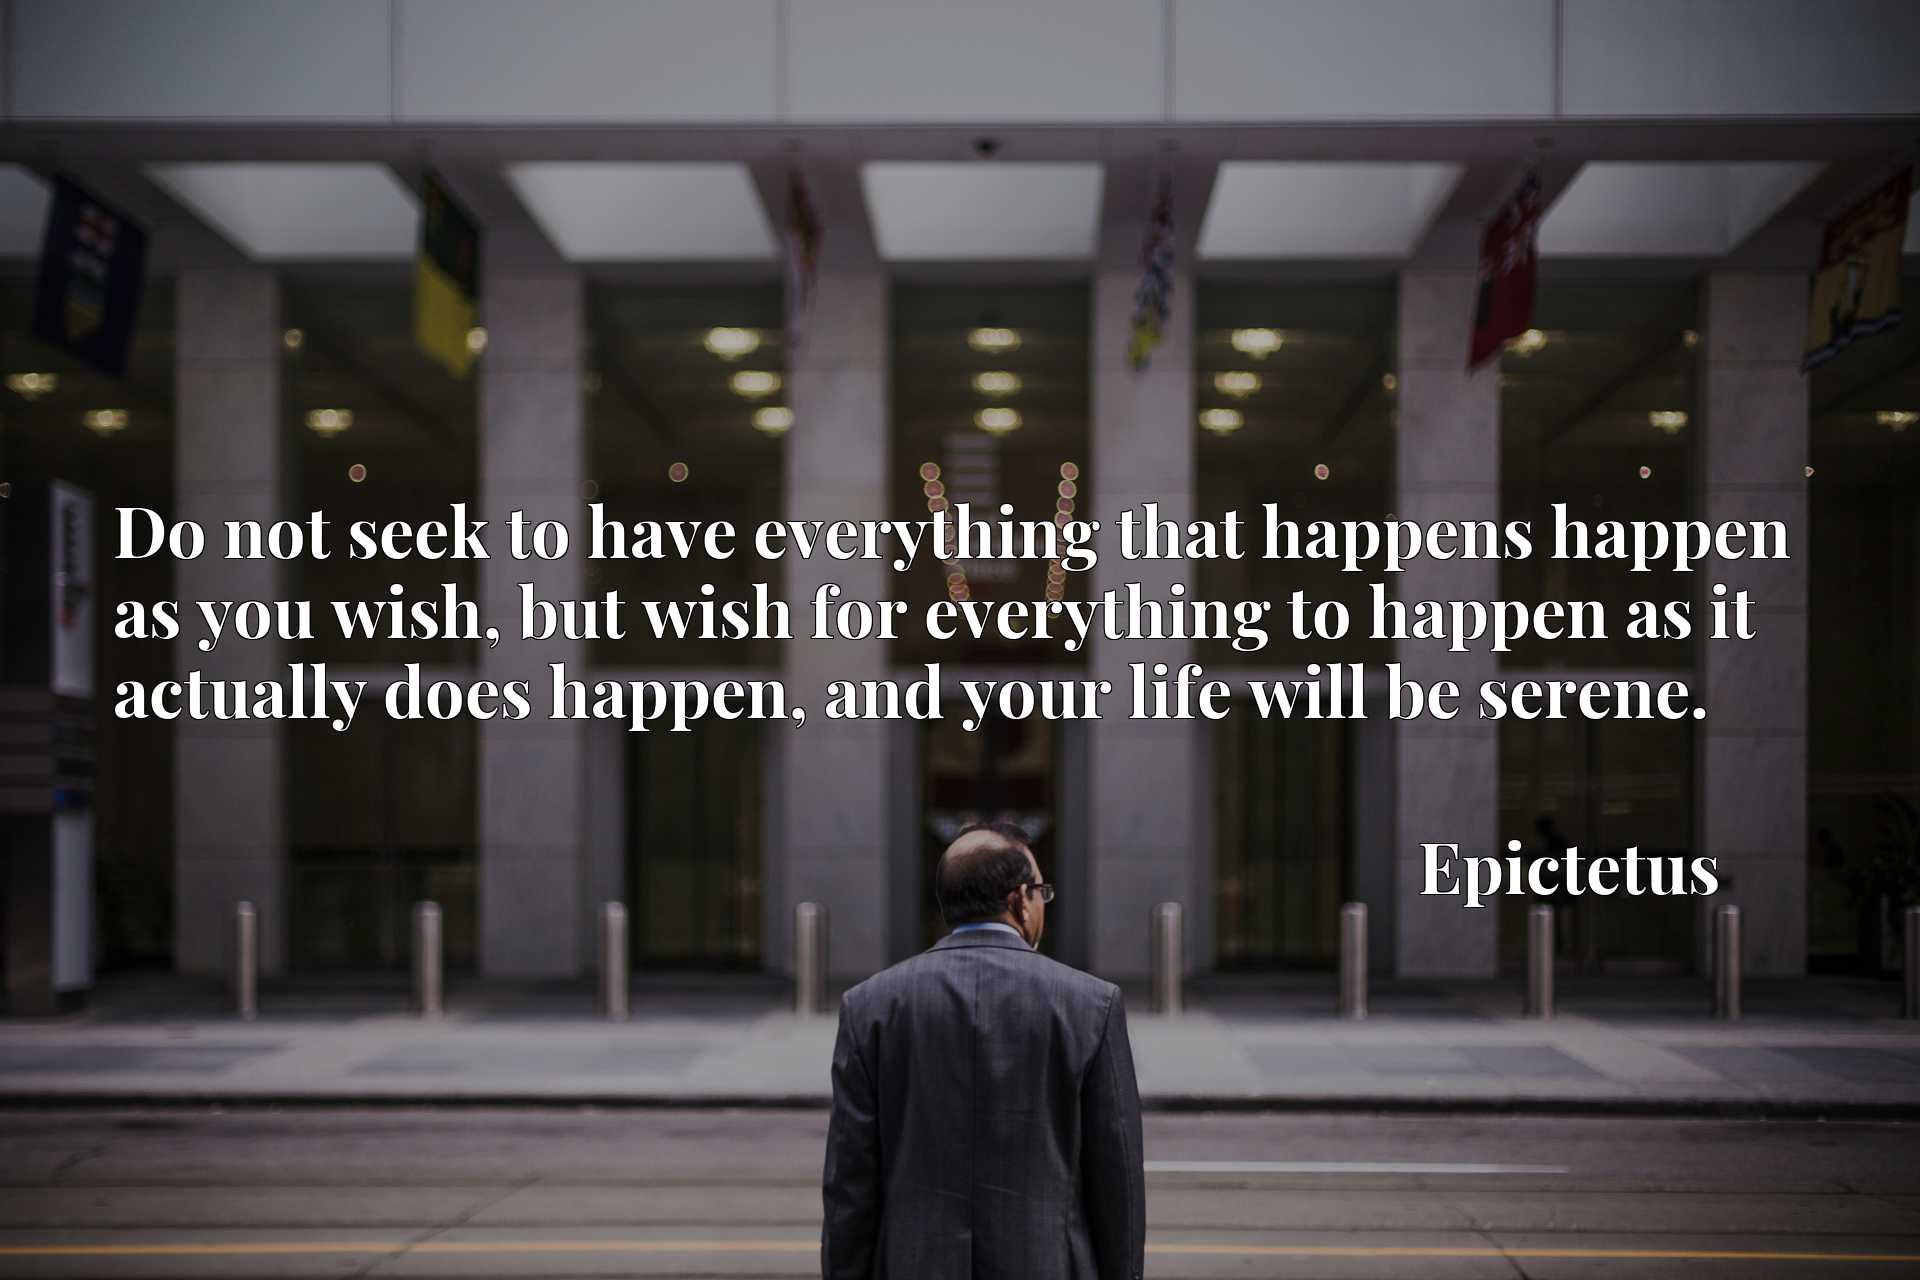 Do not seek to have everything that happens happen as you wish, but wish for everything to happen as it actually does happen, and your life will be serene.